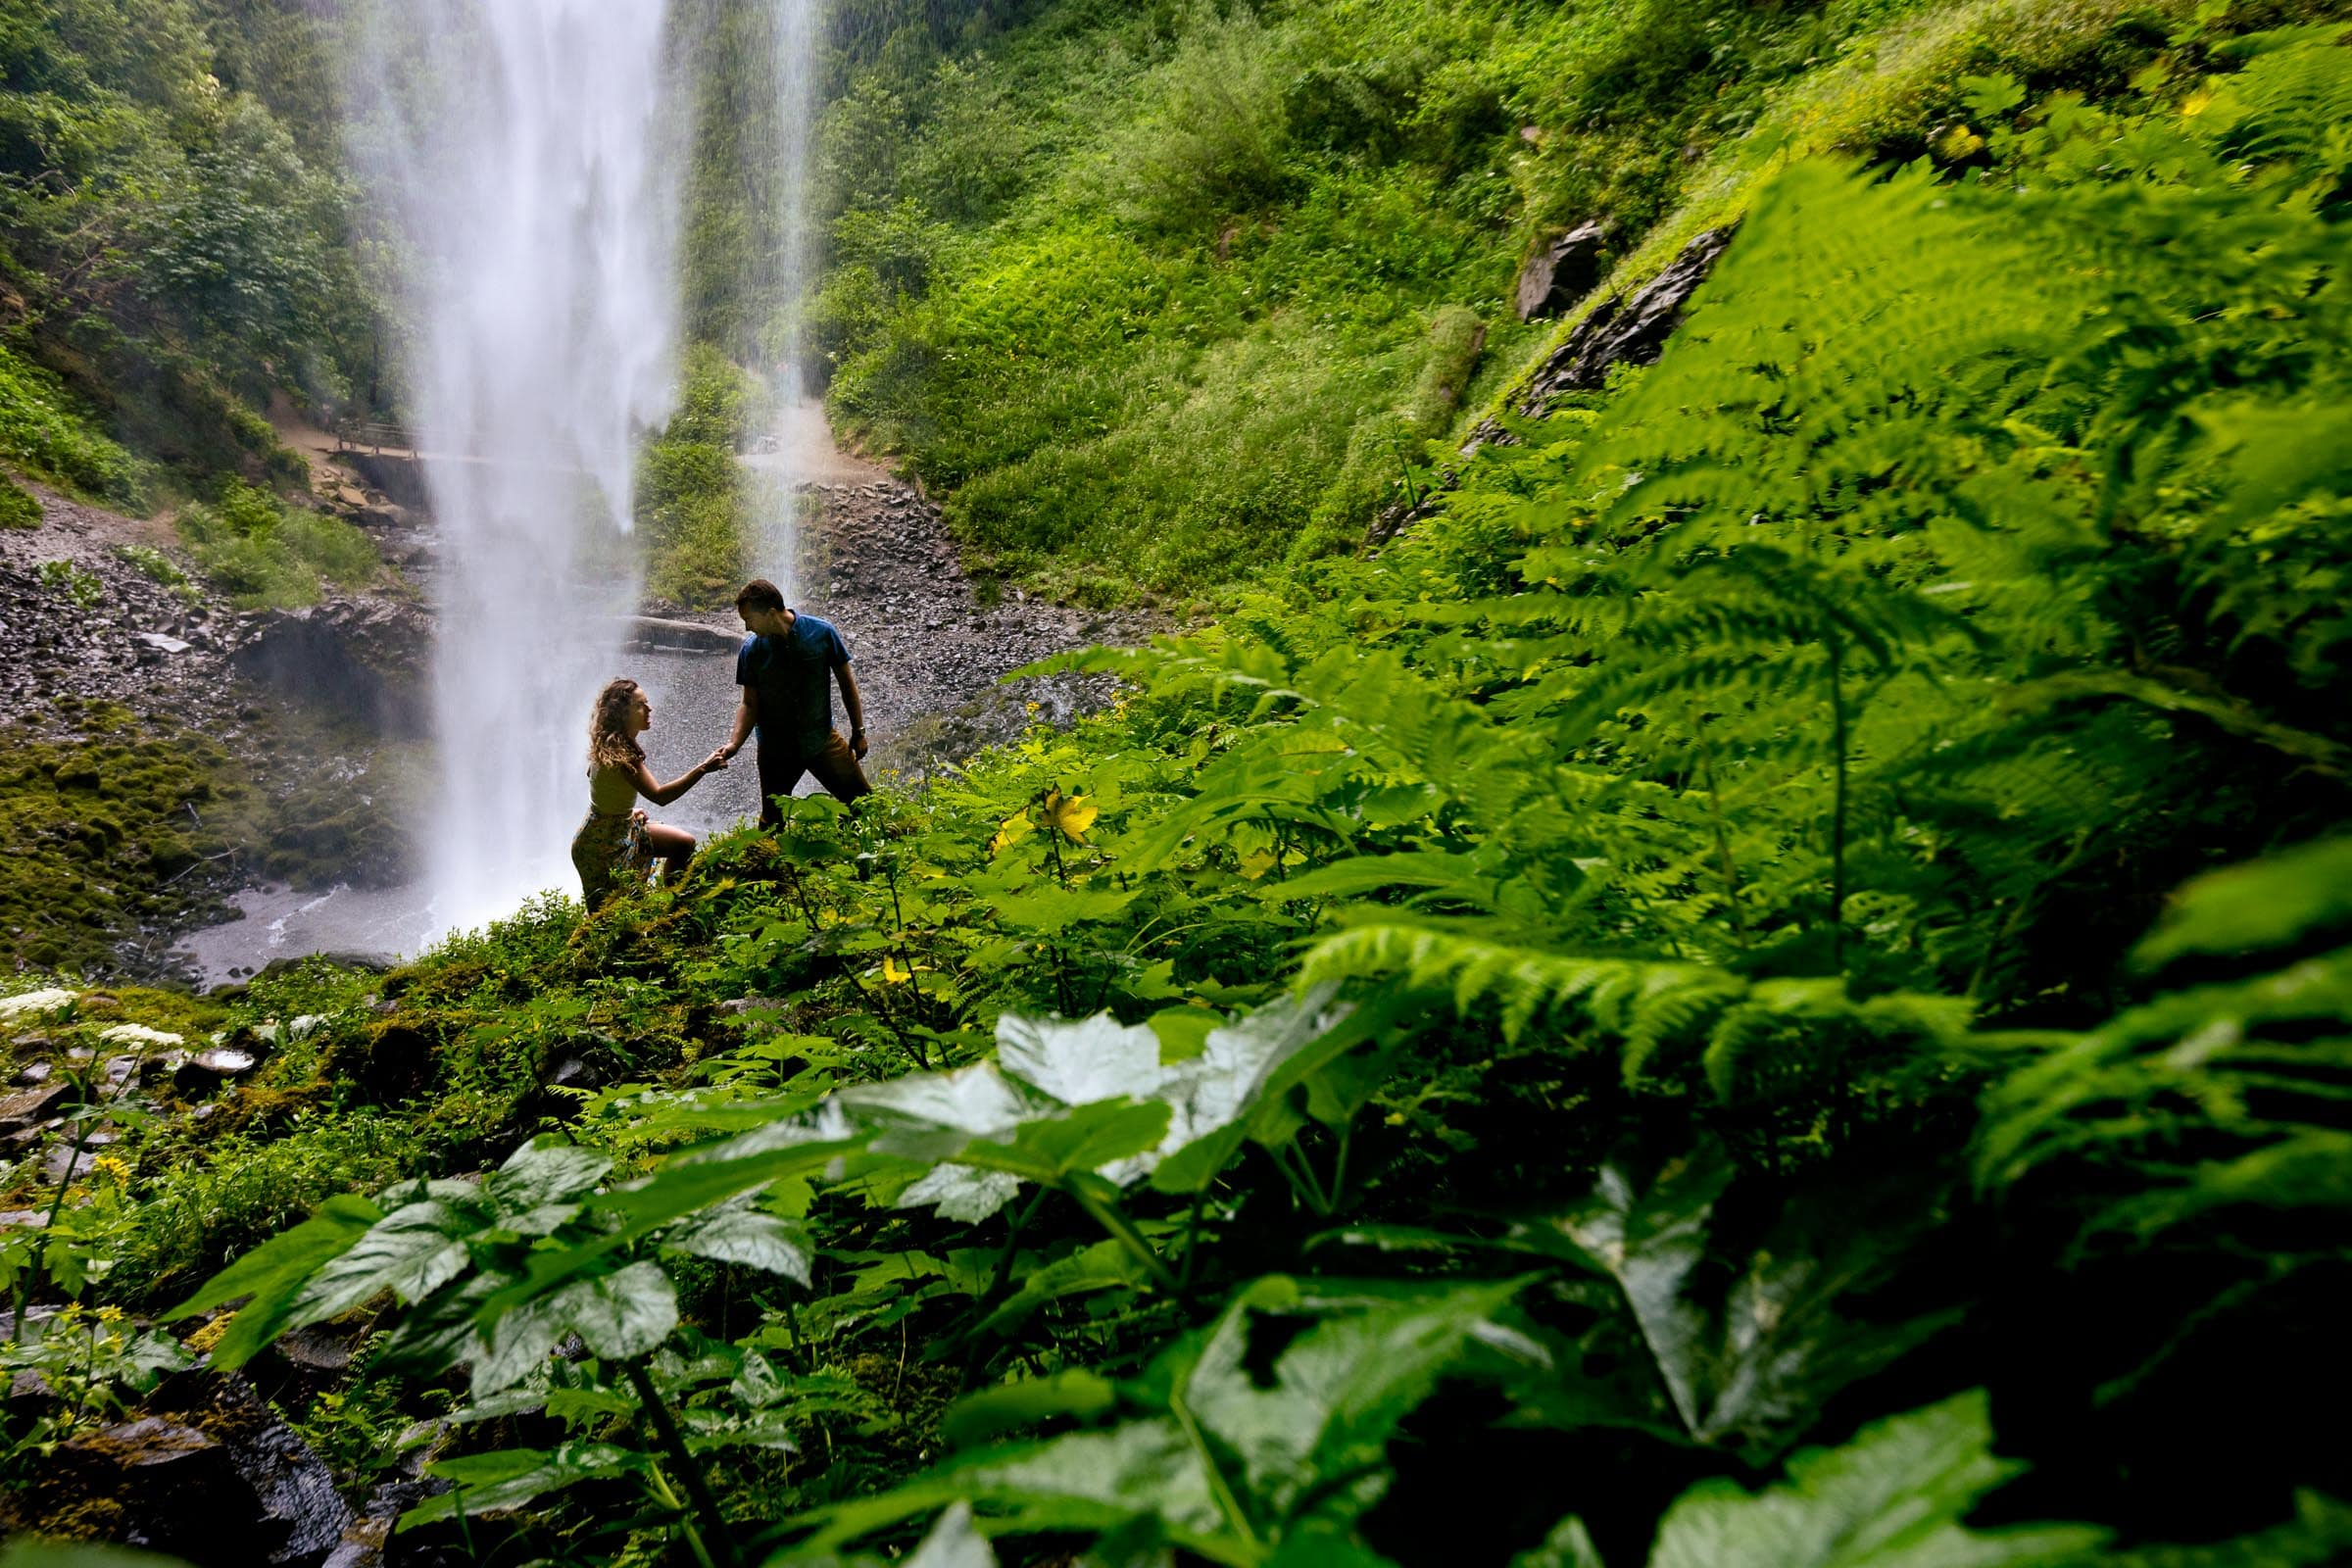 Engagement photos of a couple walking under Latourell Falls moments after their real proposal moment. Best Engagement Photography Locations in Portland. Latourell Falls Engagement Photos by Jos and Tree, portland wedding photographers.